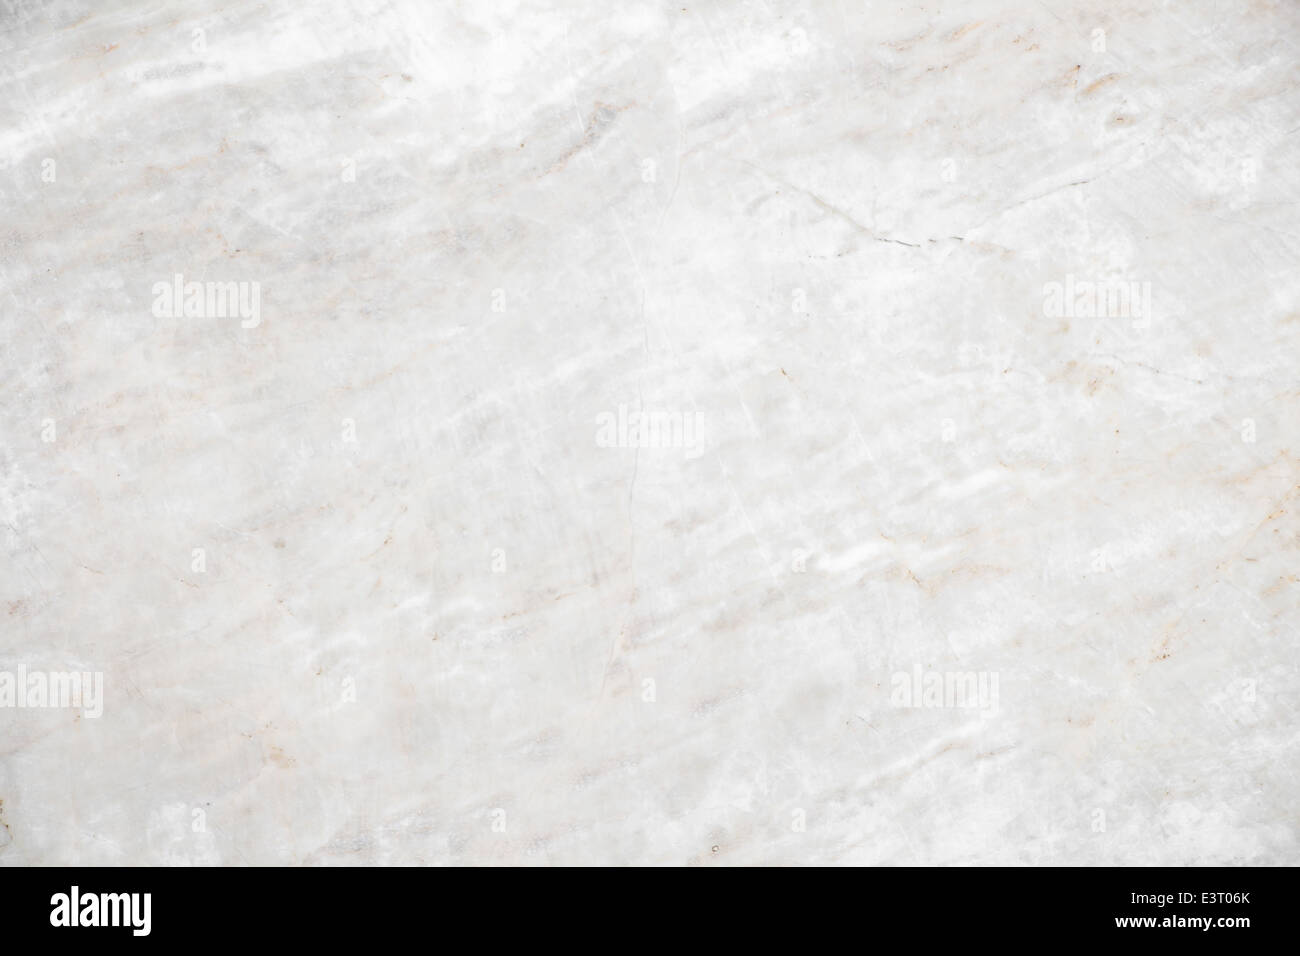 Beautiful white marble background or texture ceramic tile stock beautiful white marble background or texture ceramic tile dailygadgetfo Gallery